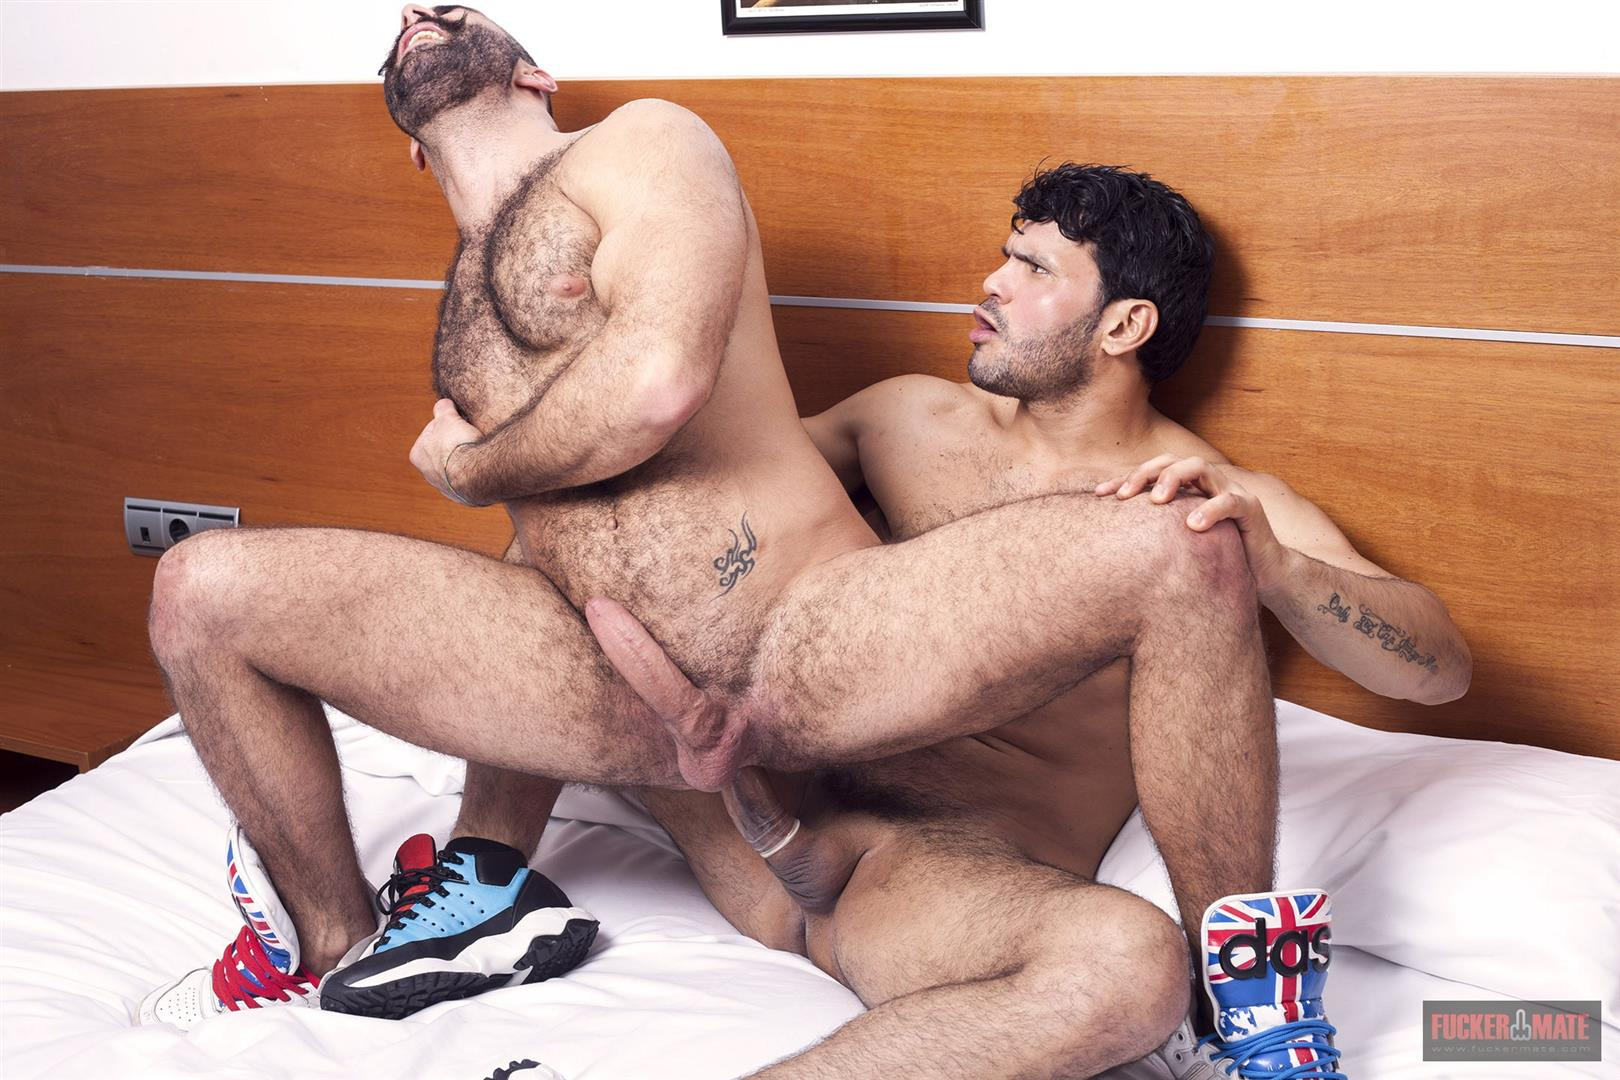 gay hairy muscle men having sex other